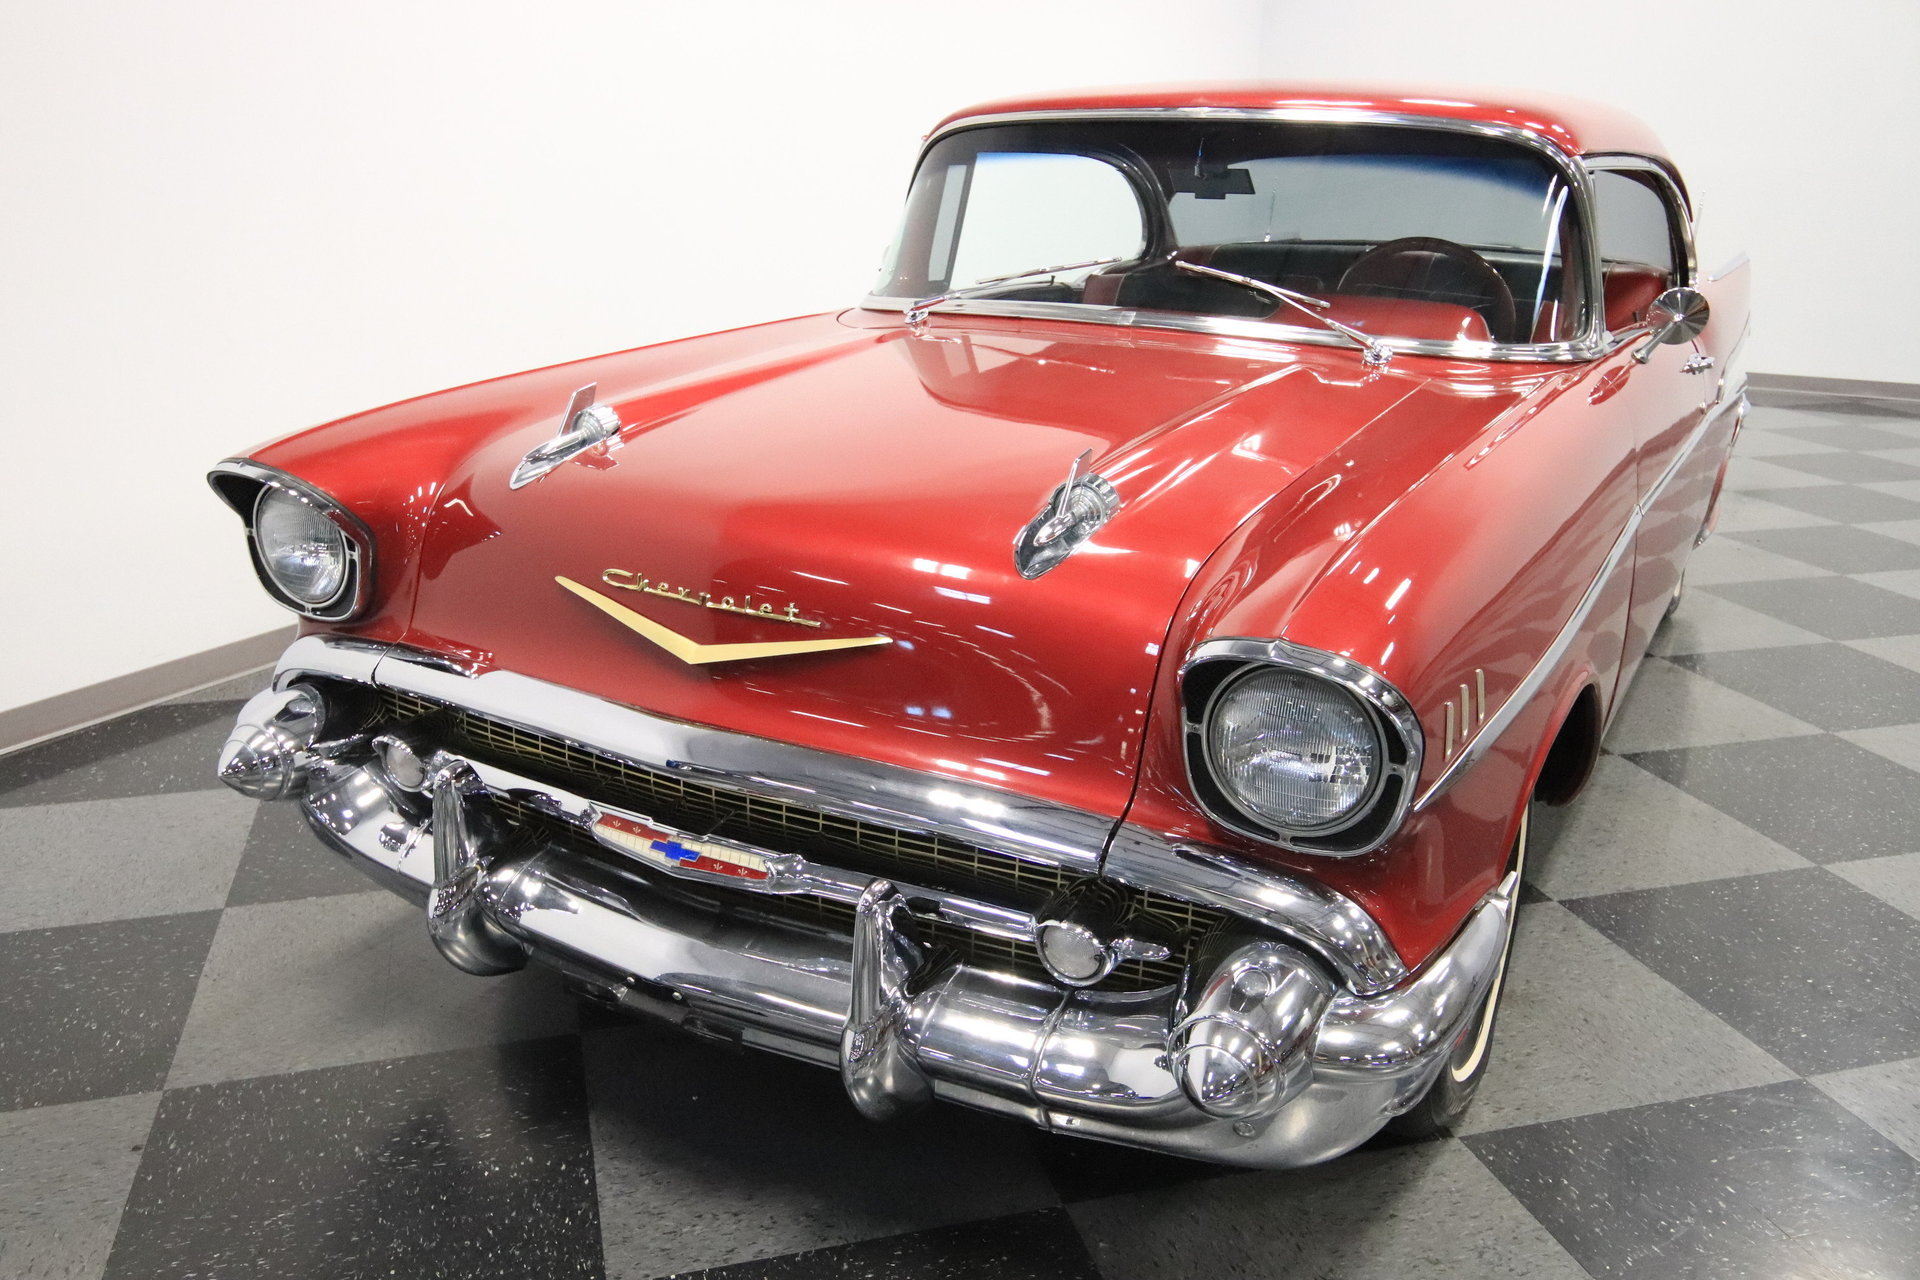 1957 Chevrolet Bel Air Streetside Classics The Nations Trusted Chevy Front Suspension View 360